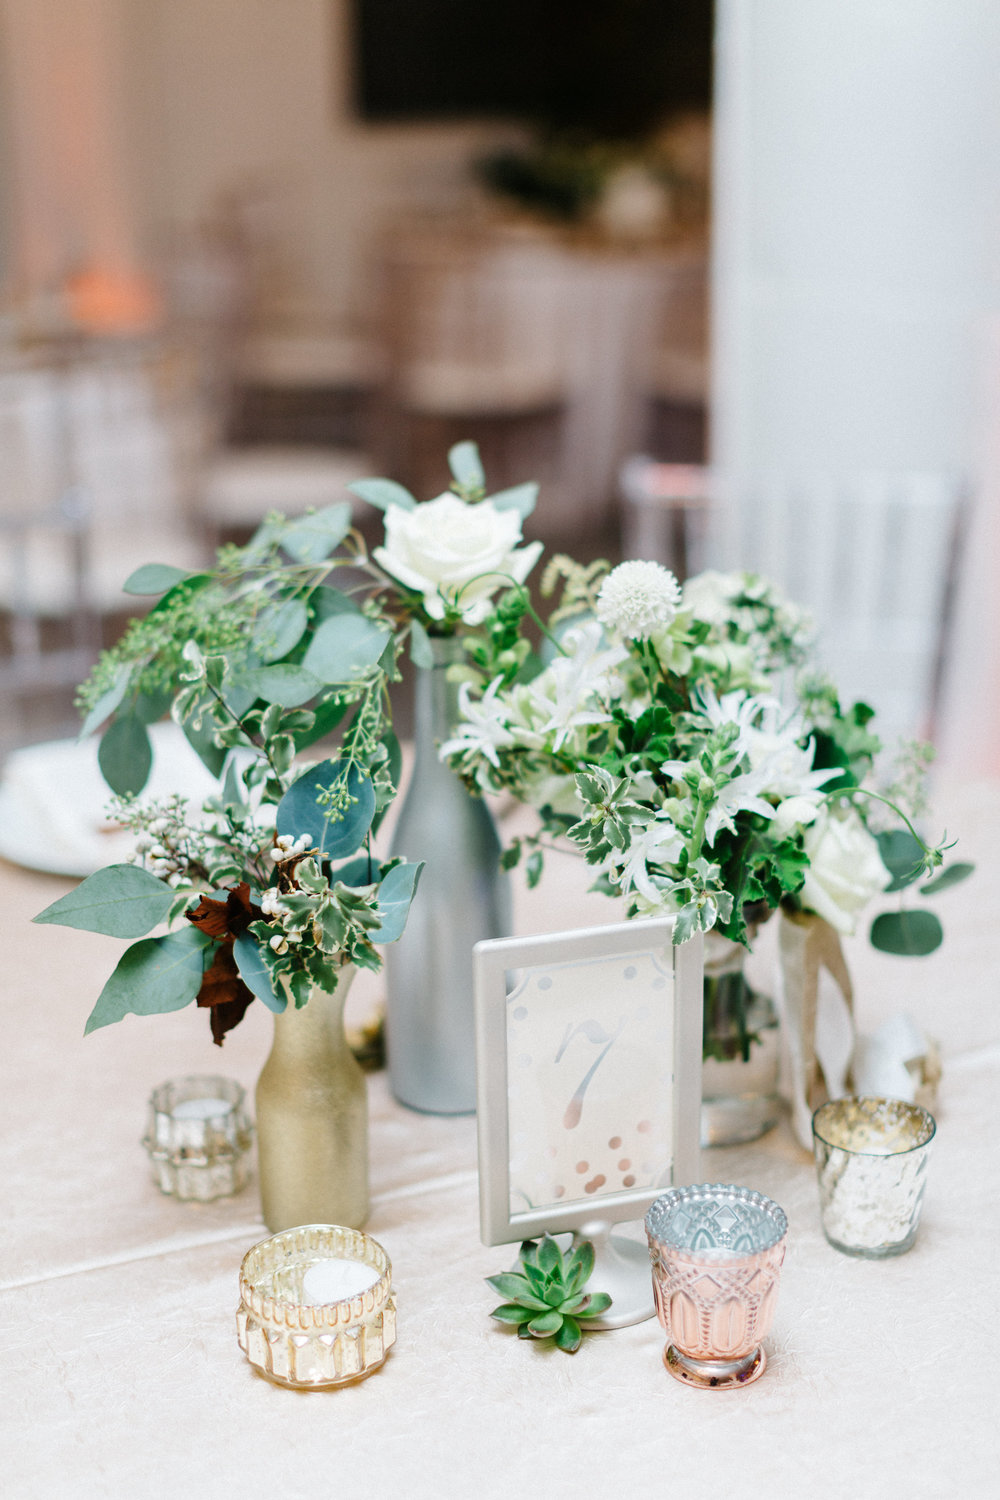 bud vase centerpieces with white and green wedding flowers.JPG